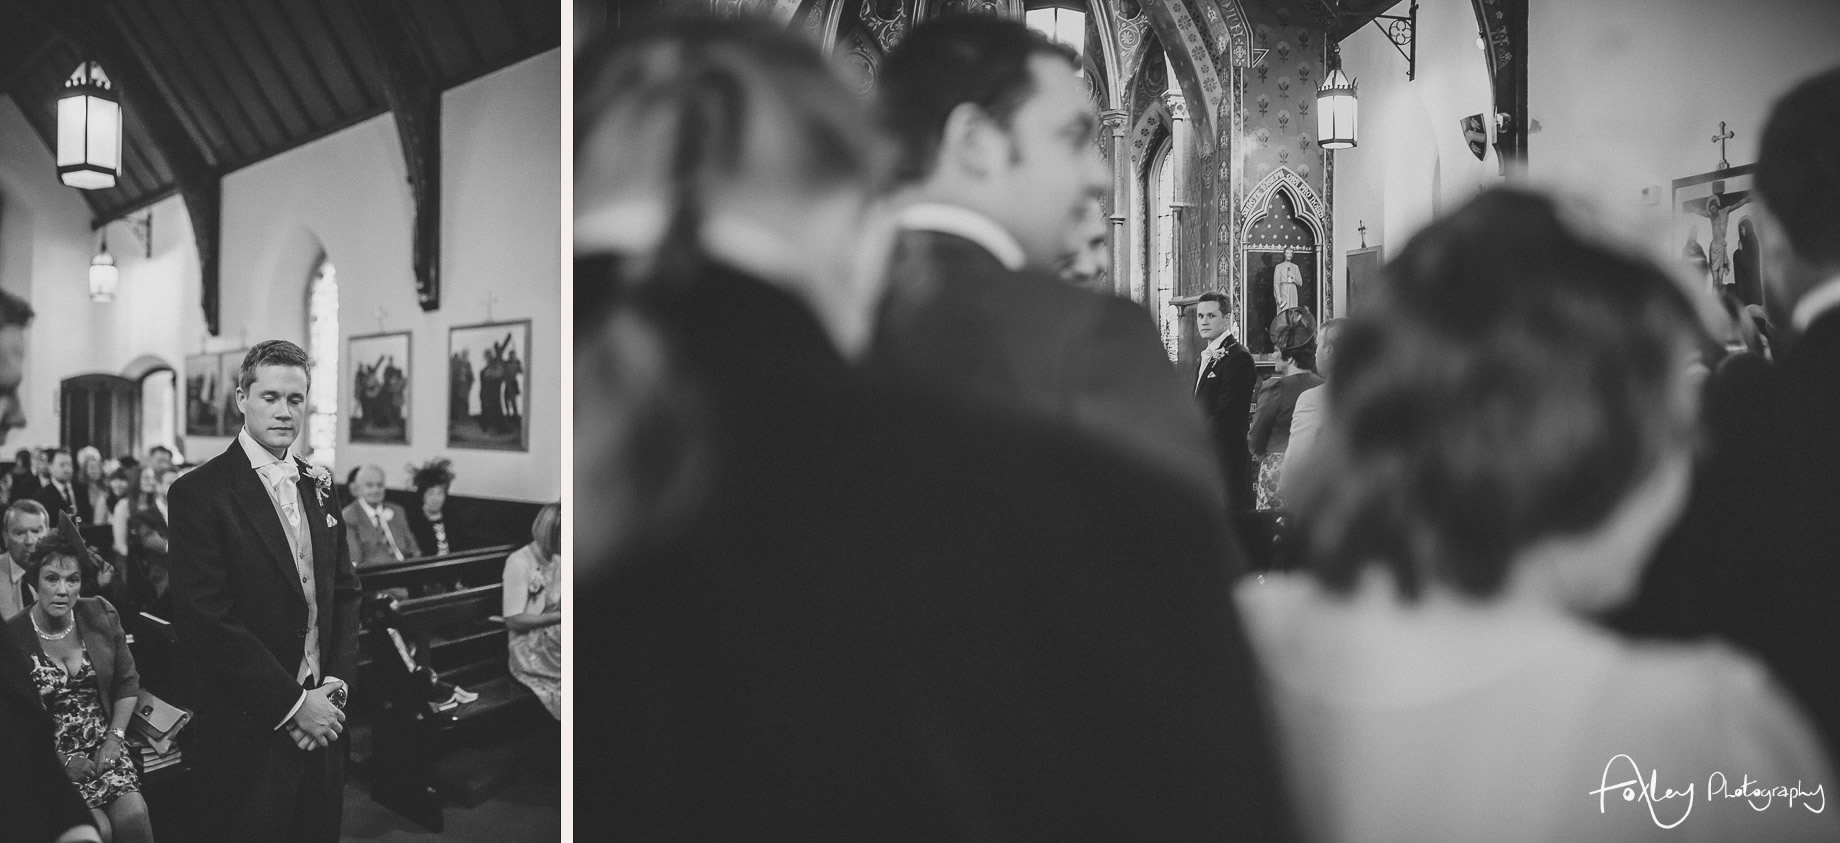 Claire and James' Wedding at Mitton Hall 082